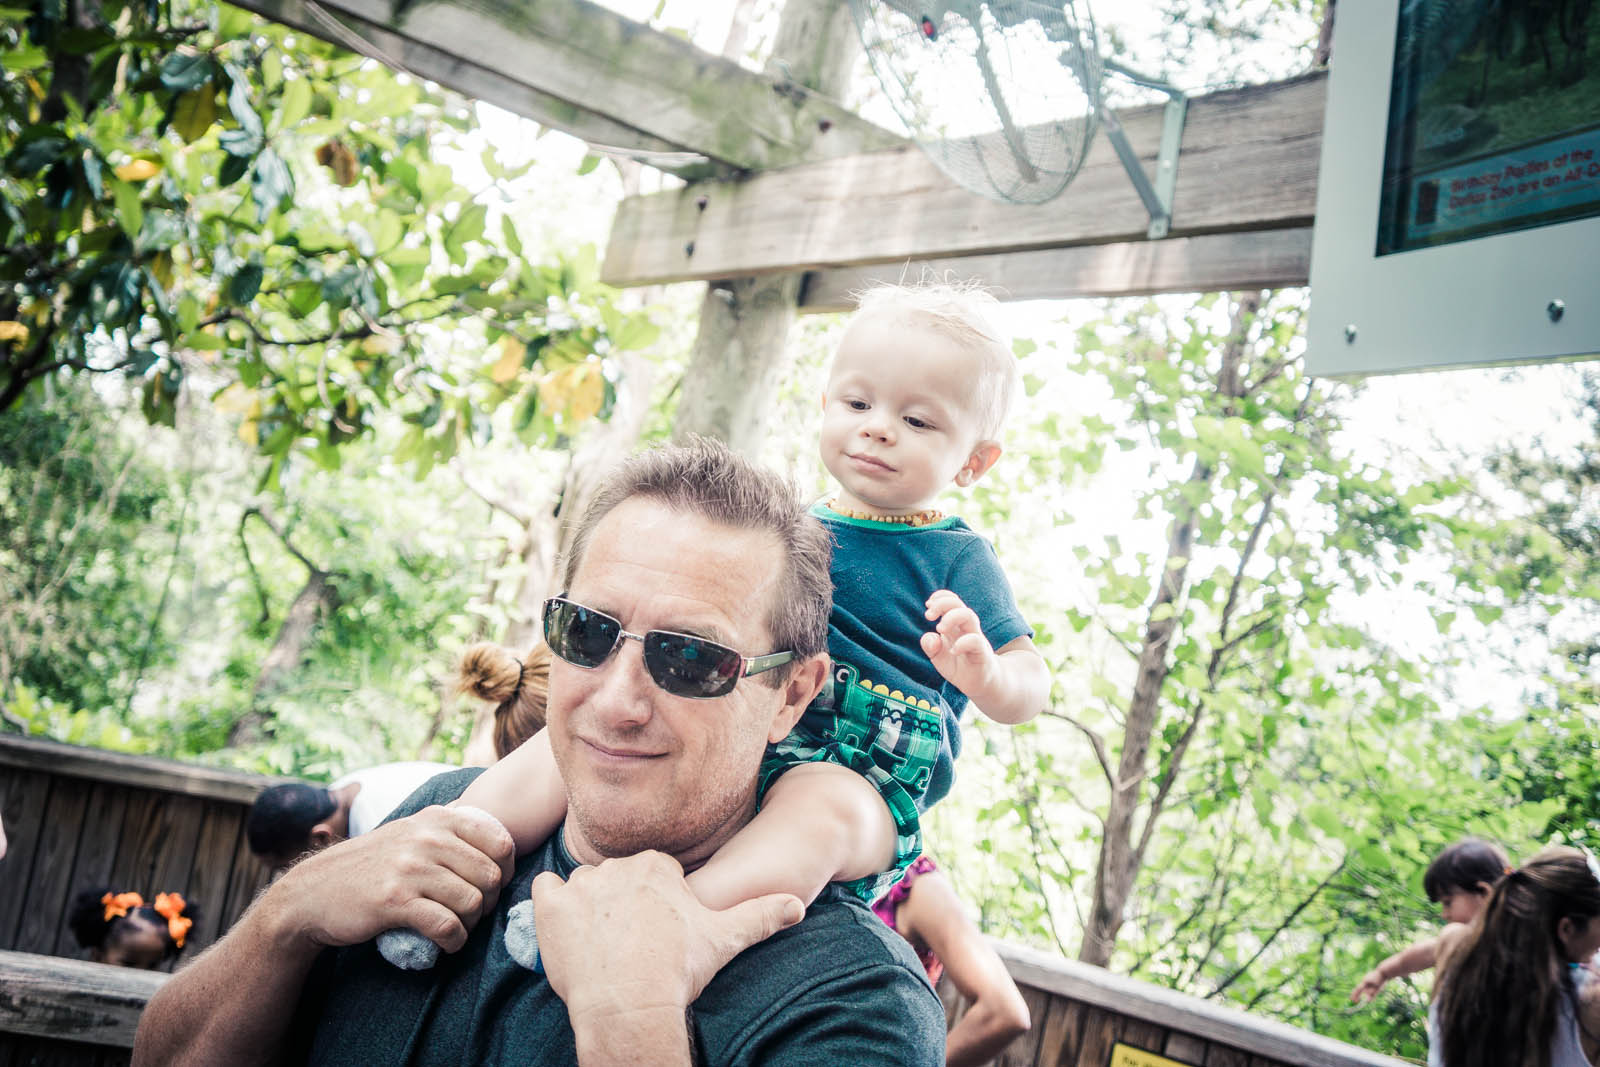 After - Using 'Day at the Zoo' in the JamesB Family Lifestyle collection